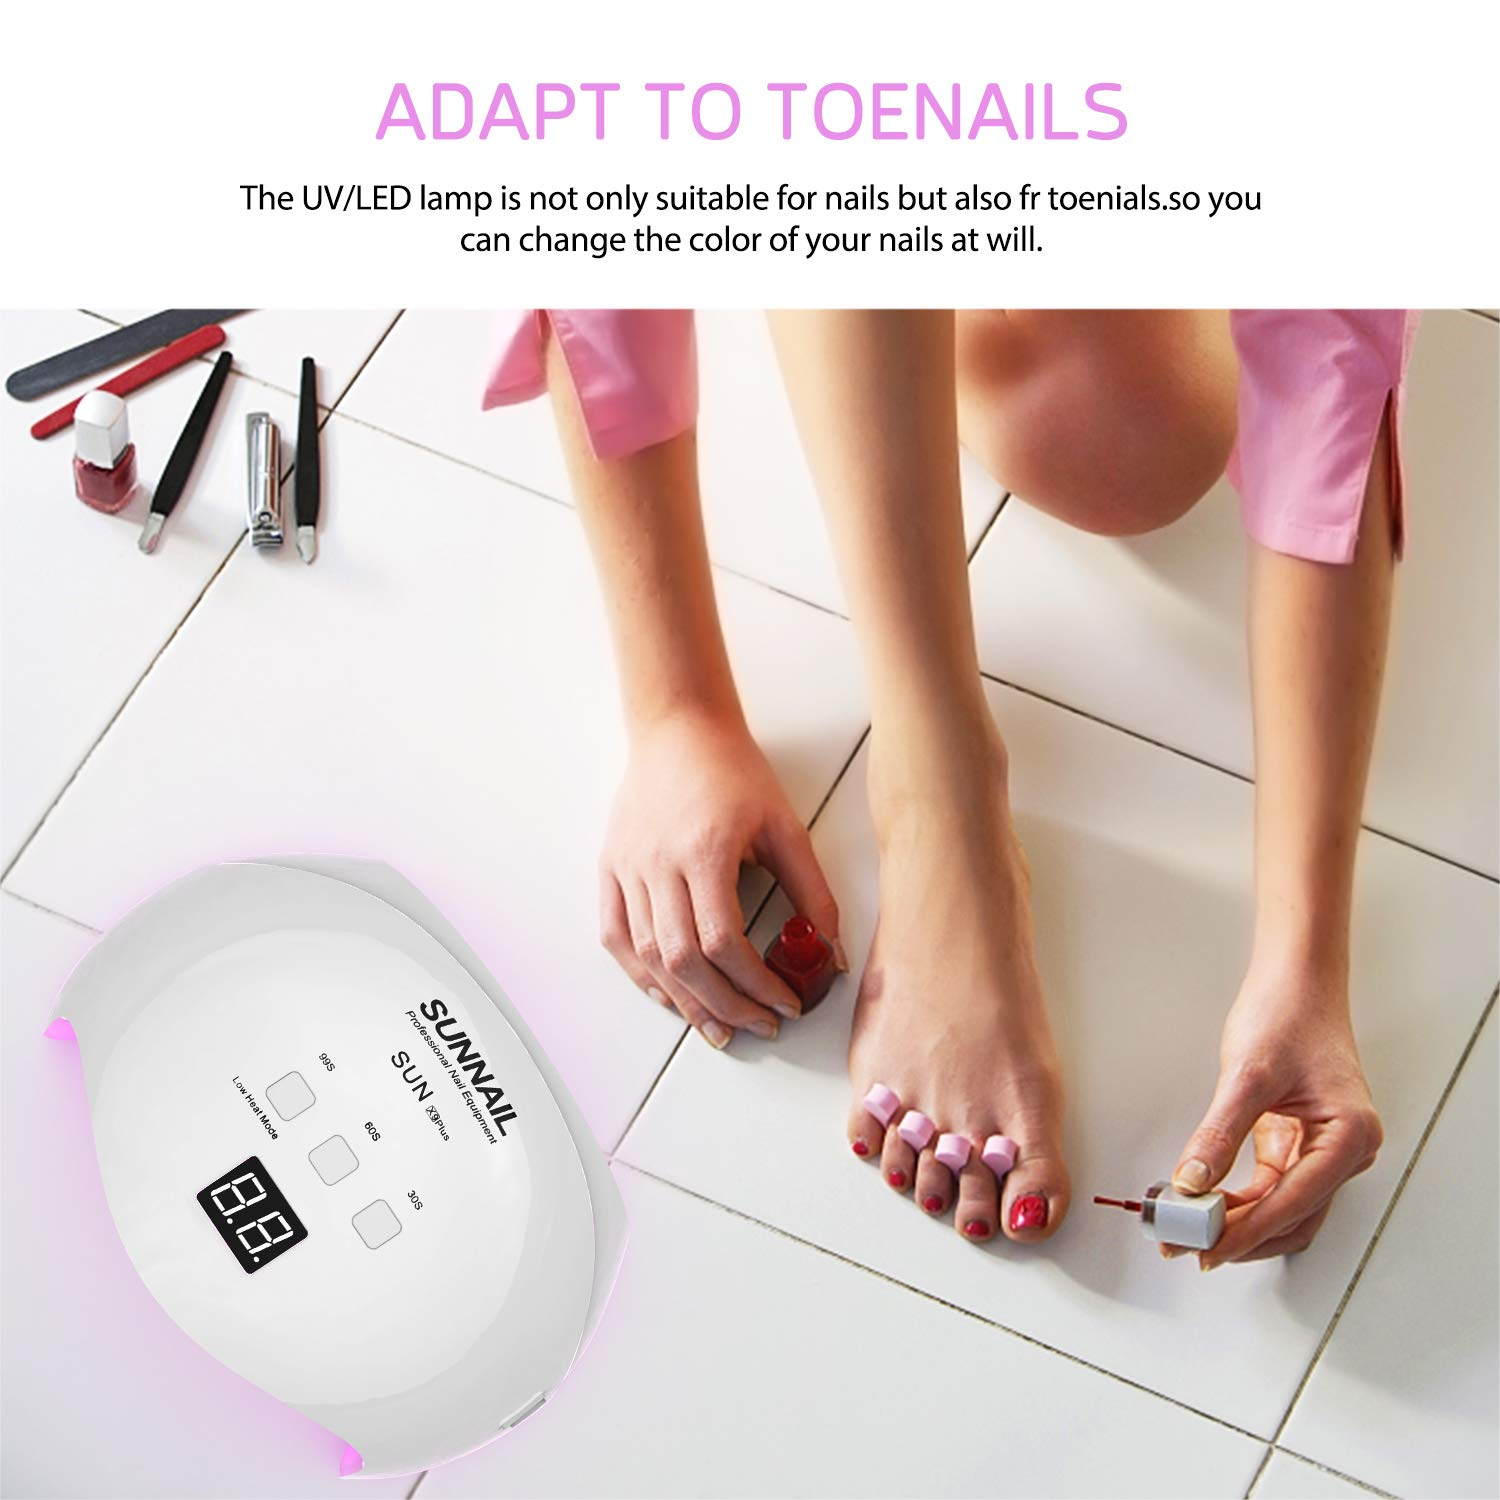 40W UV LED Nail Lamp, Fast Curing Gel Nail Dryer with 3 Timer Settings, Count Down LCD Display, Auto On/Off for Salons and Home, White